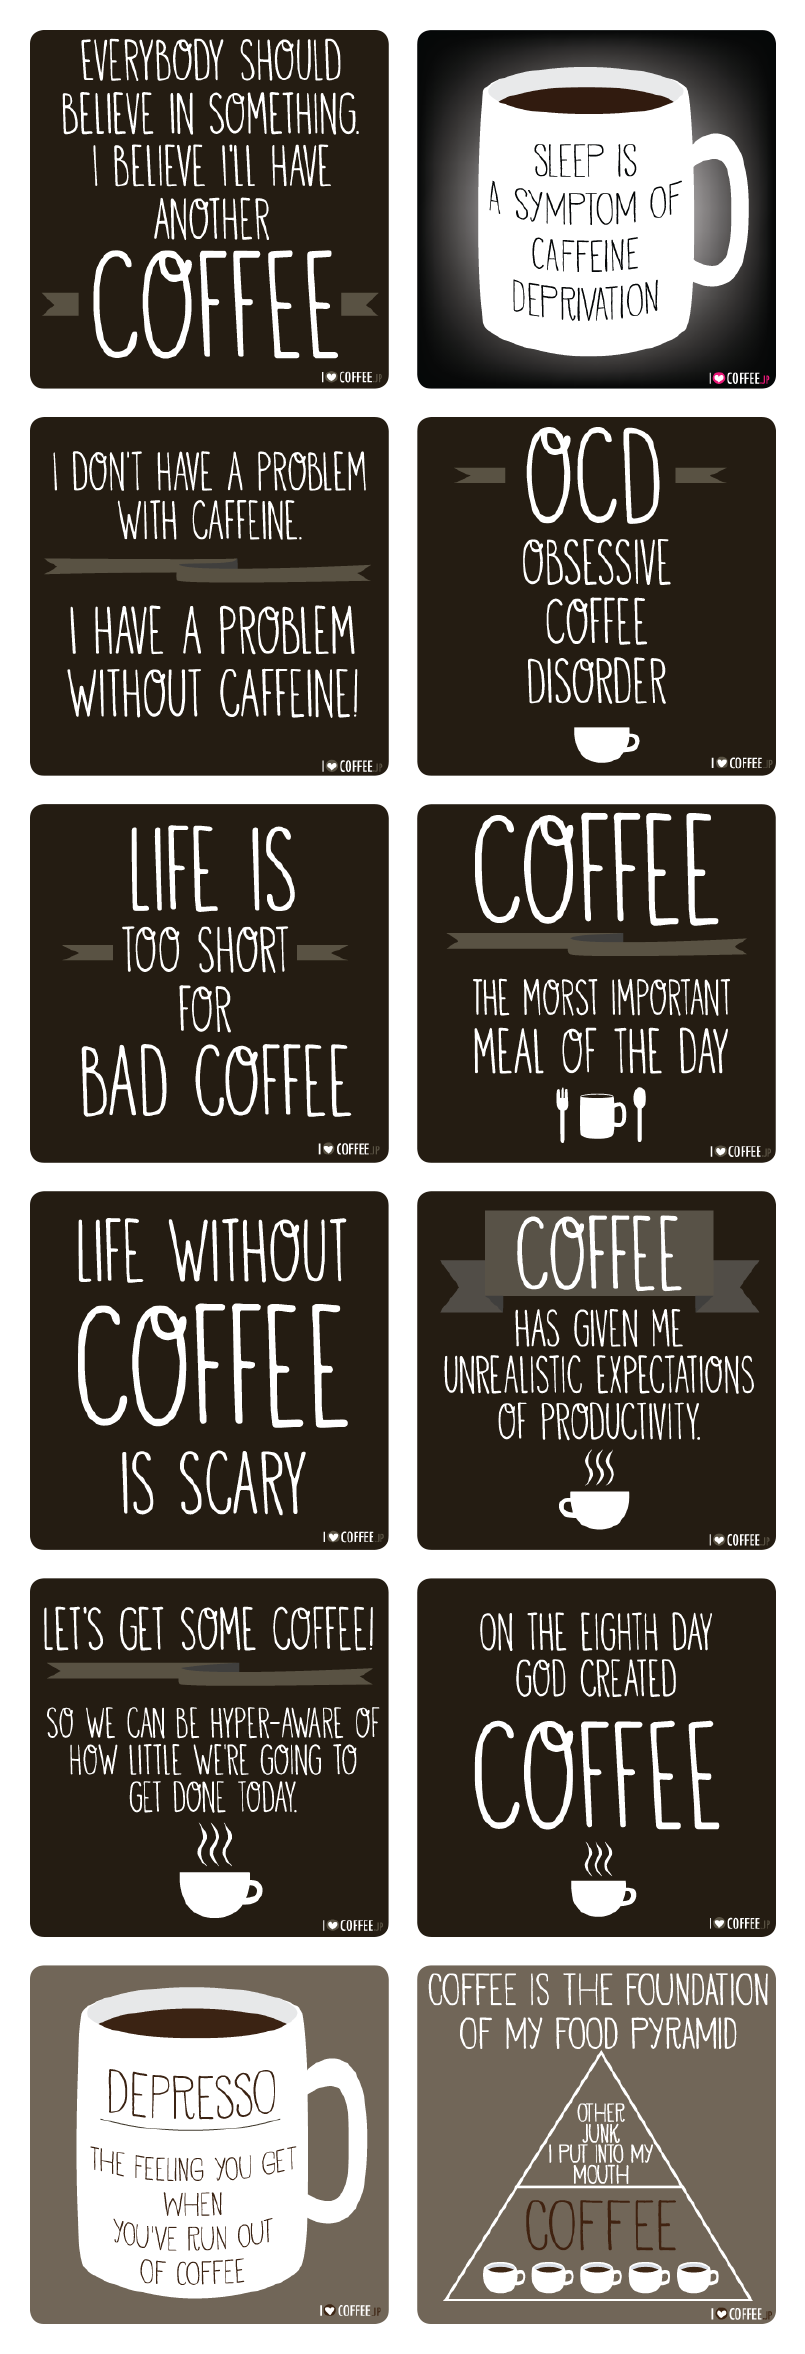 Coffe quotes from http://en.ilovecoffee.jp/posts/view/117